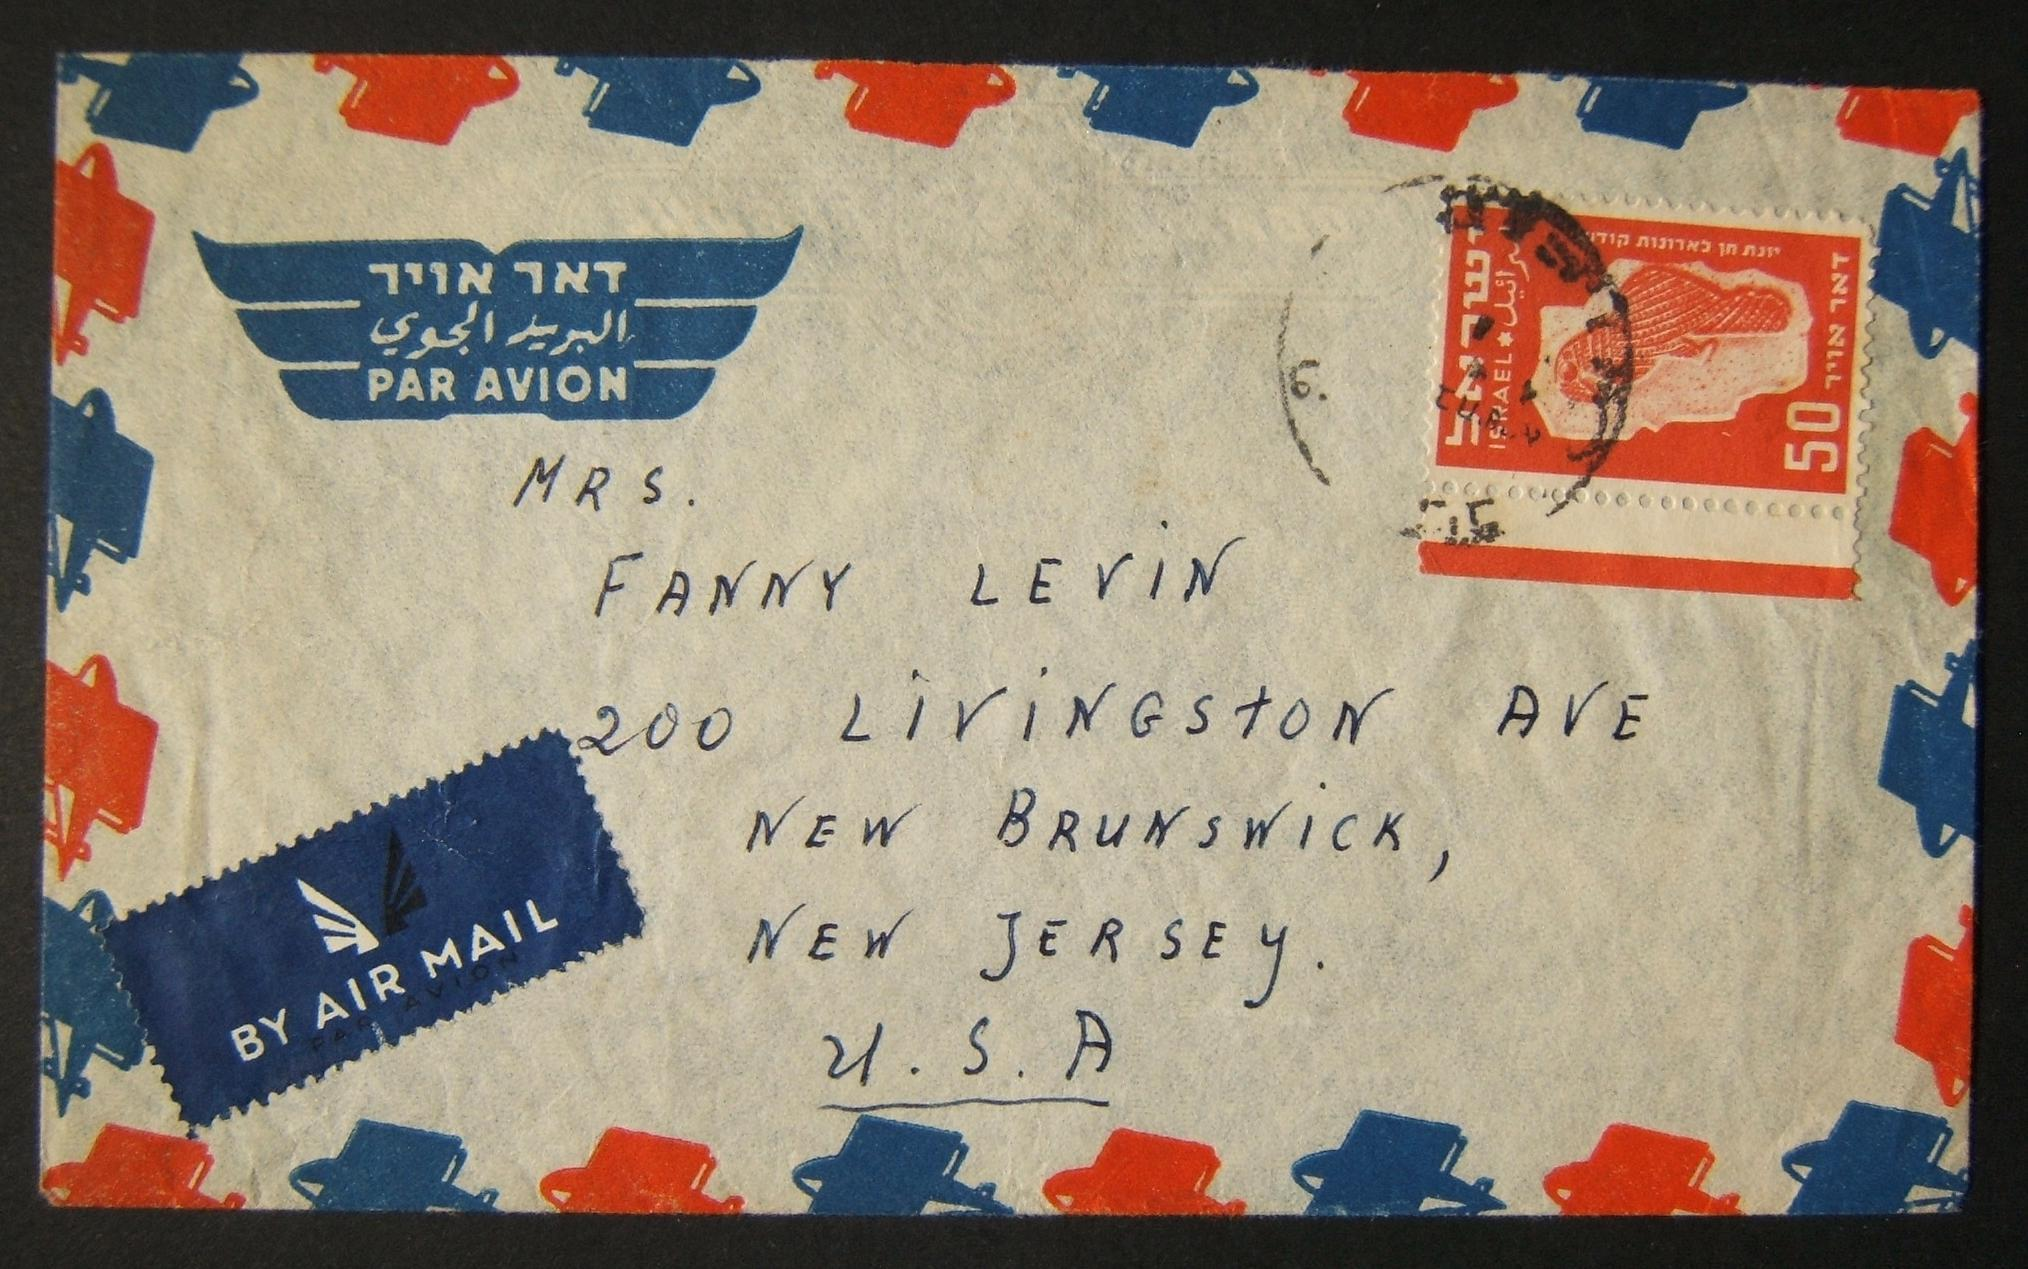 1950 1st airmail / PO's, rates & routes: 4-8-1951 Israeli airmail stationary cover ex TLV to NEW JERSEY franked 50pr at the FA-2a period rate for an air letter (unusually as this i